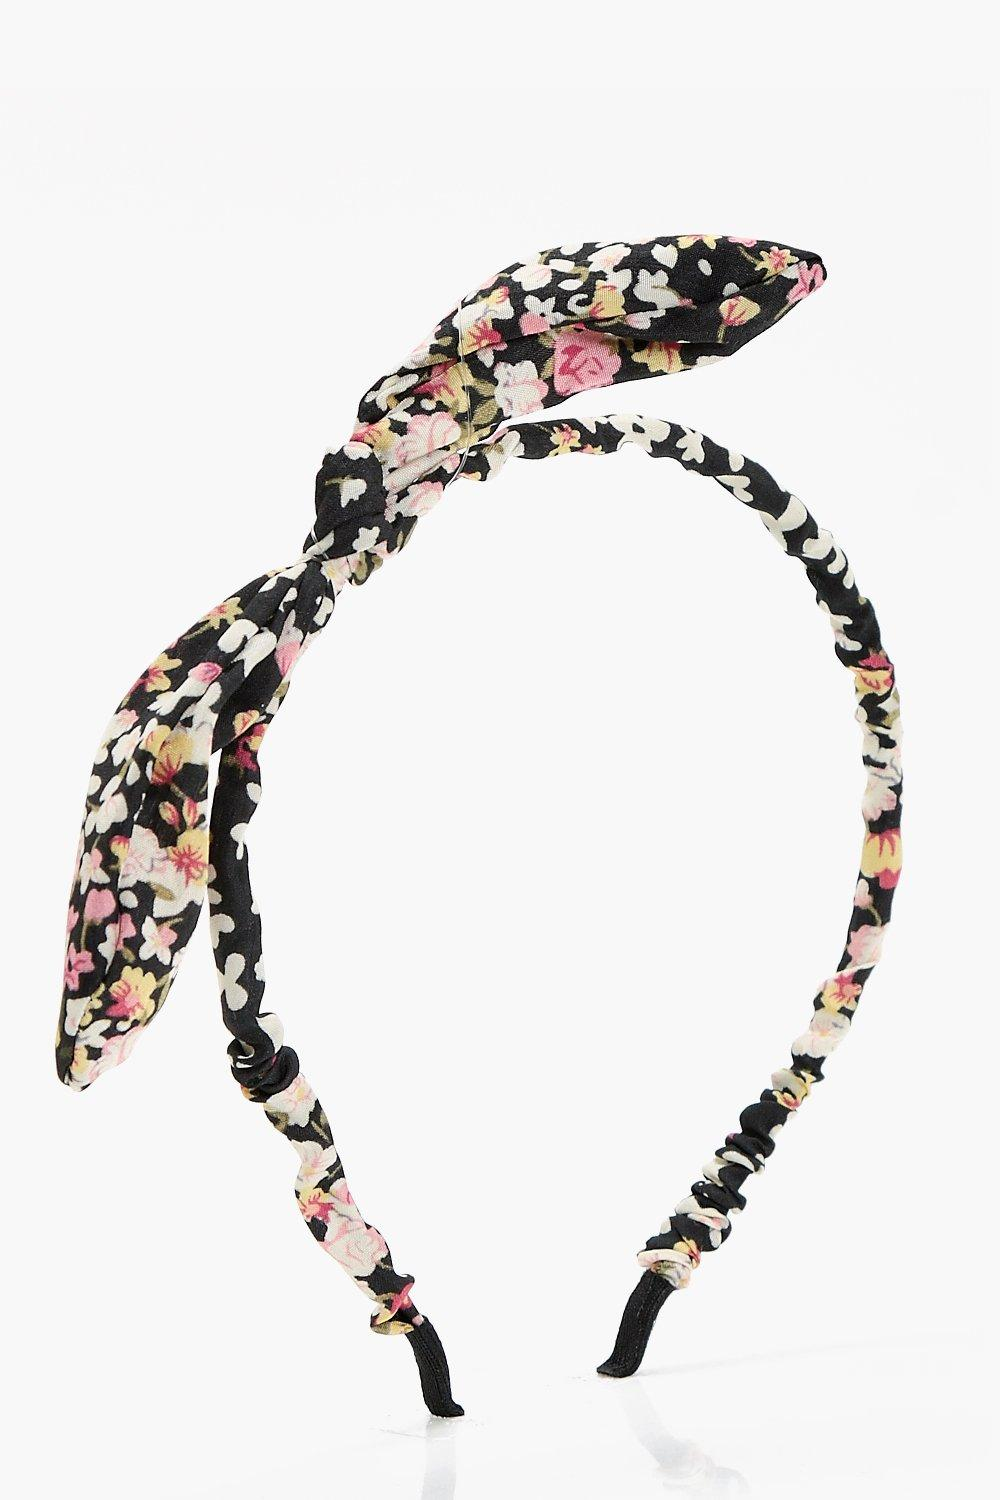 Bow Detail Floral Headband - black - Megan Bow Det